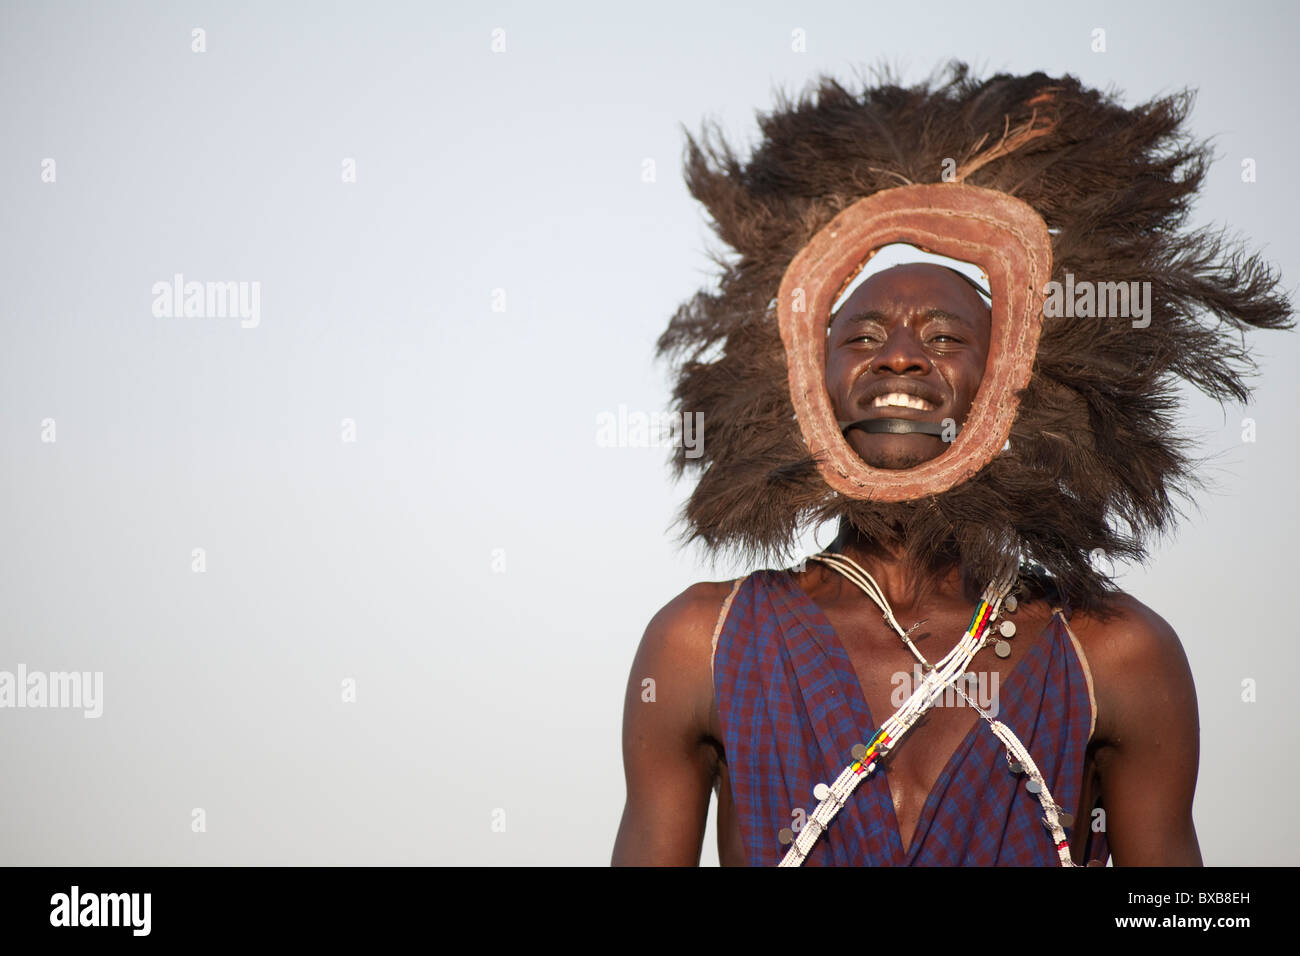 Kenyan man in tribal attire - Stock Image